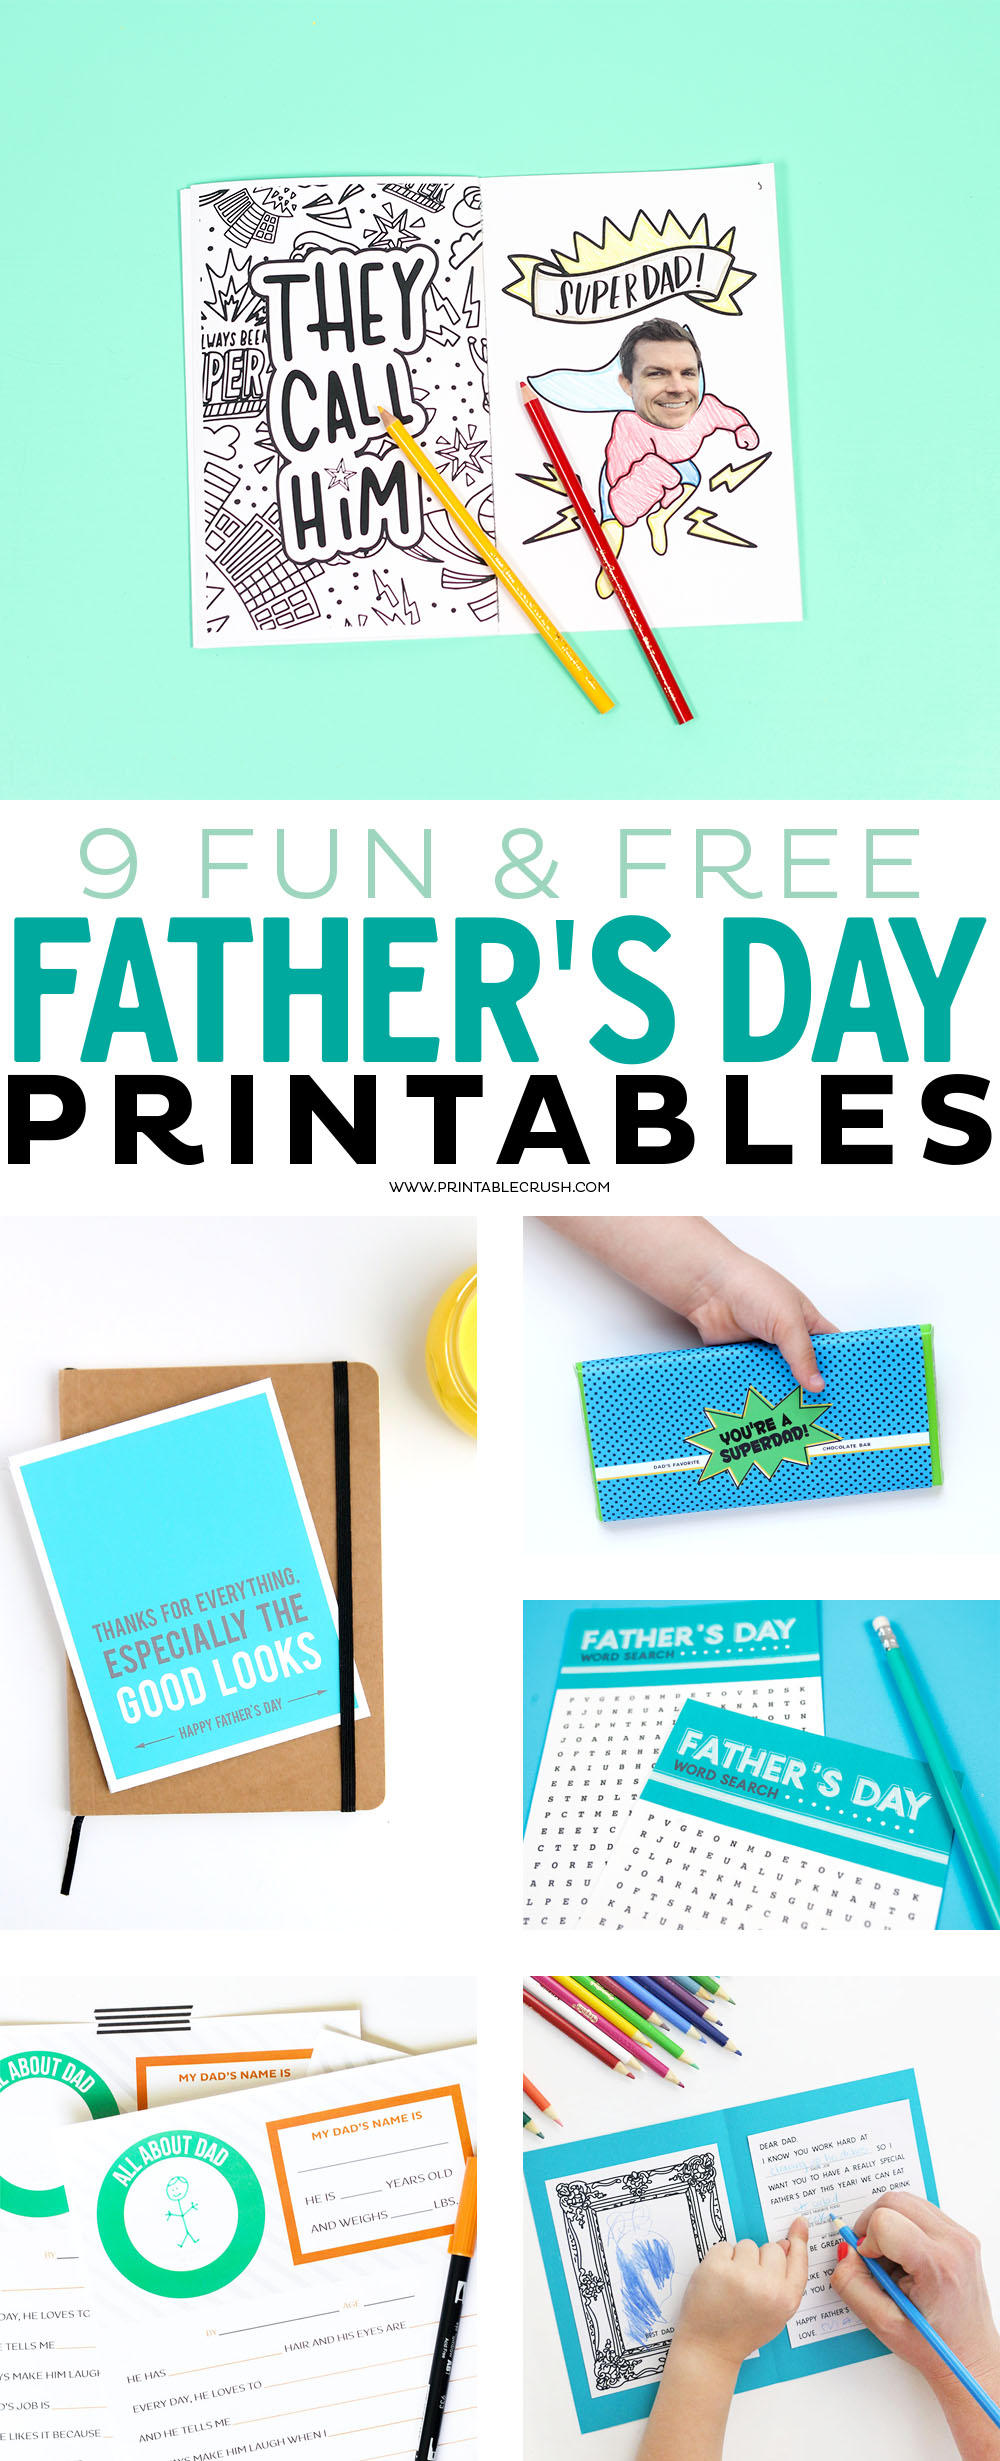 picture relating to Free Printable Funny Father's Day Cards named 9 Entertaining and Cost-free Fathers Working day Printables - Printable Crush